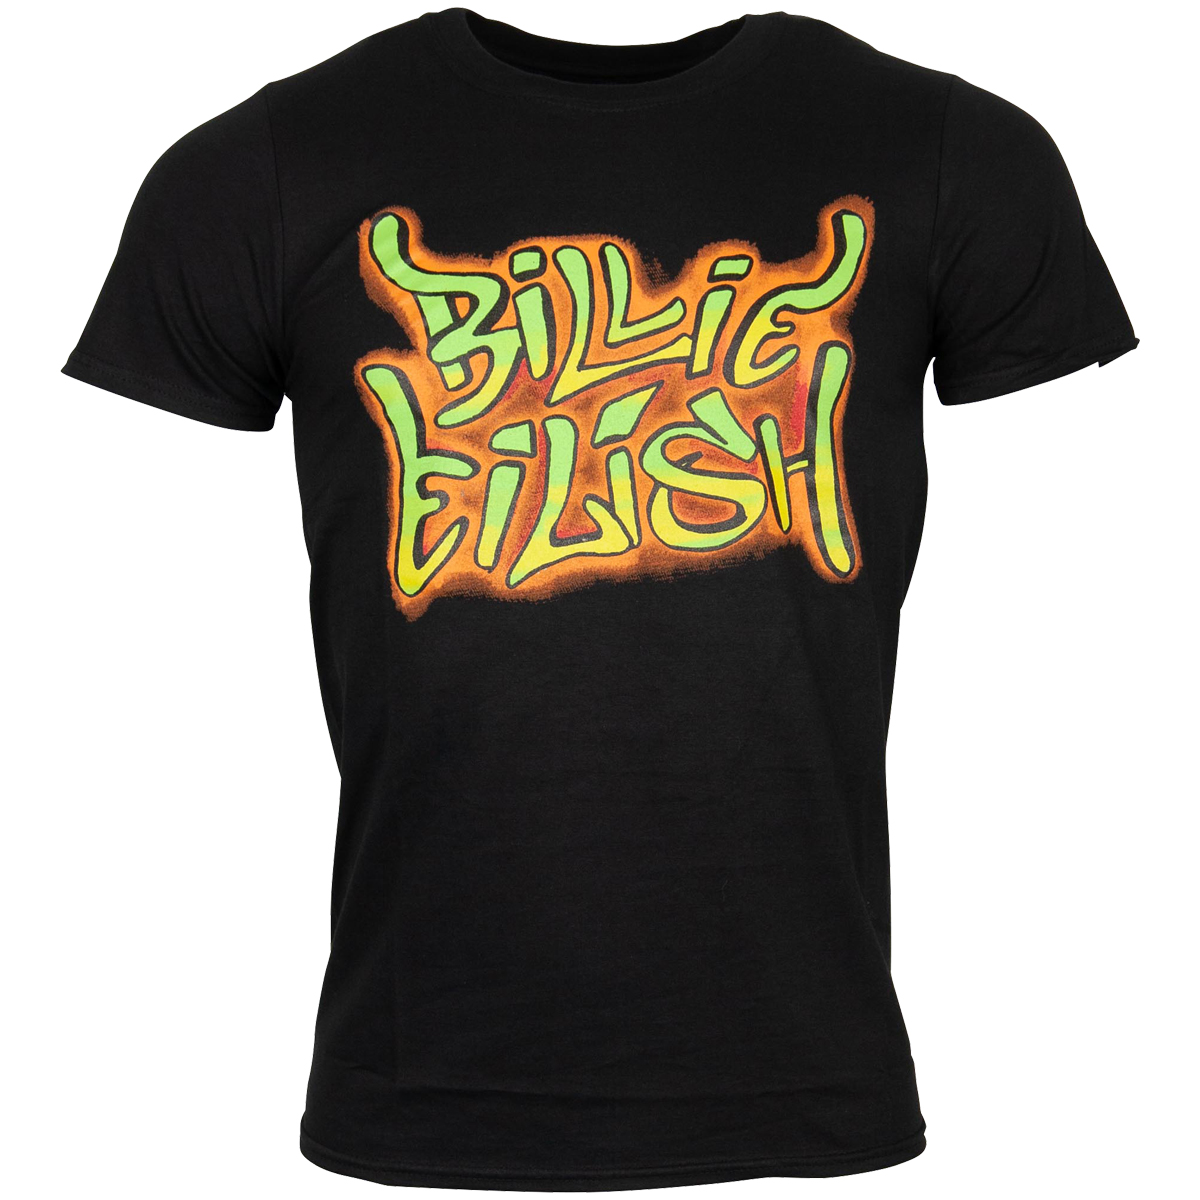 Billie Eilish - T-Shirt Graffiti - schwarz